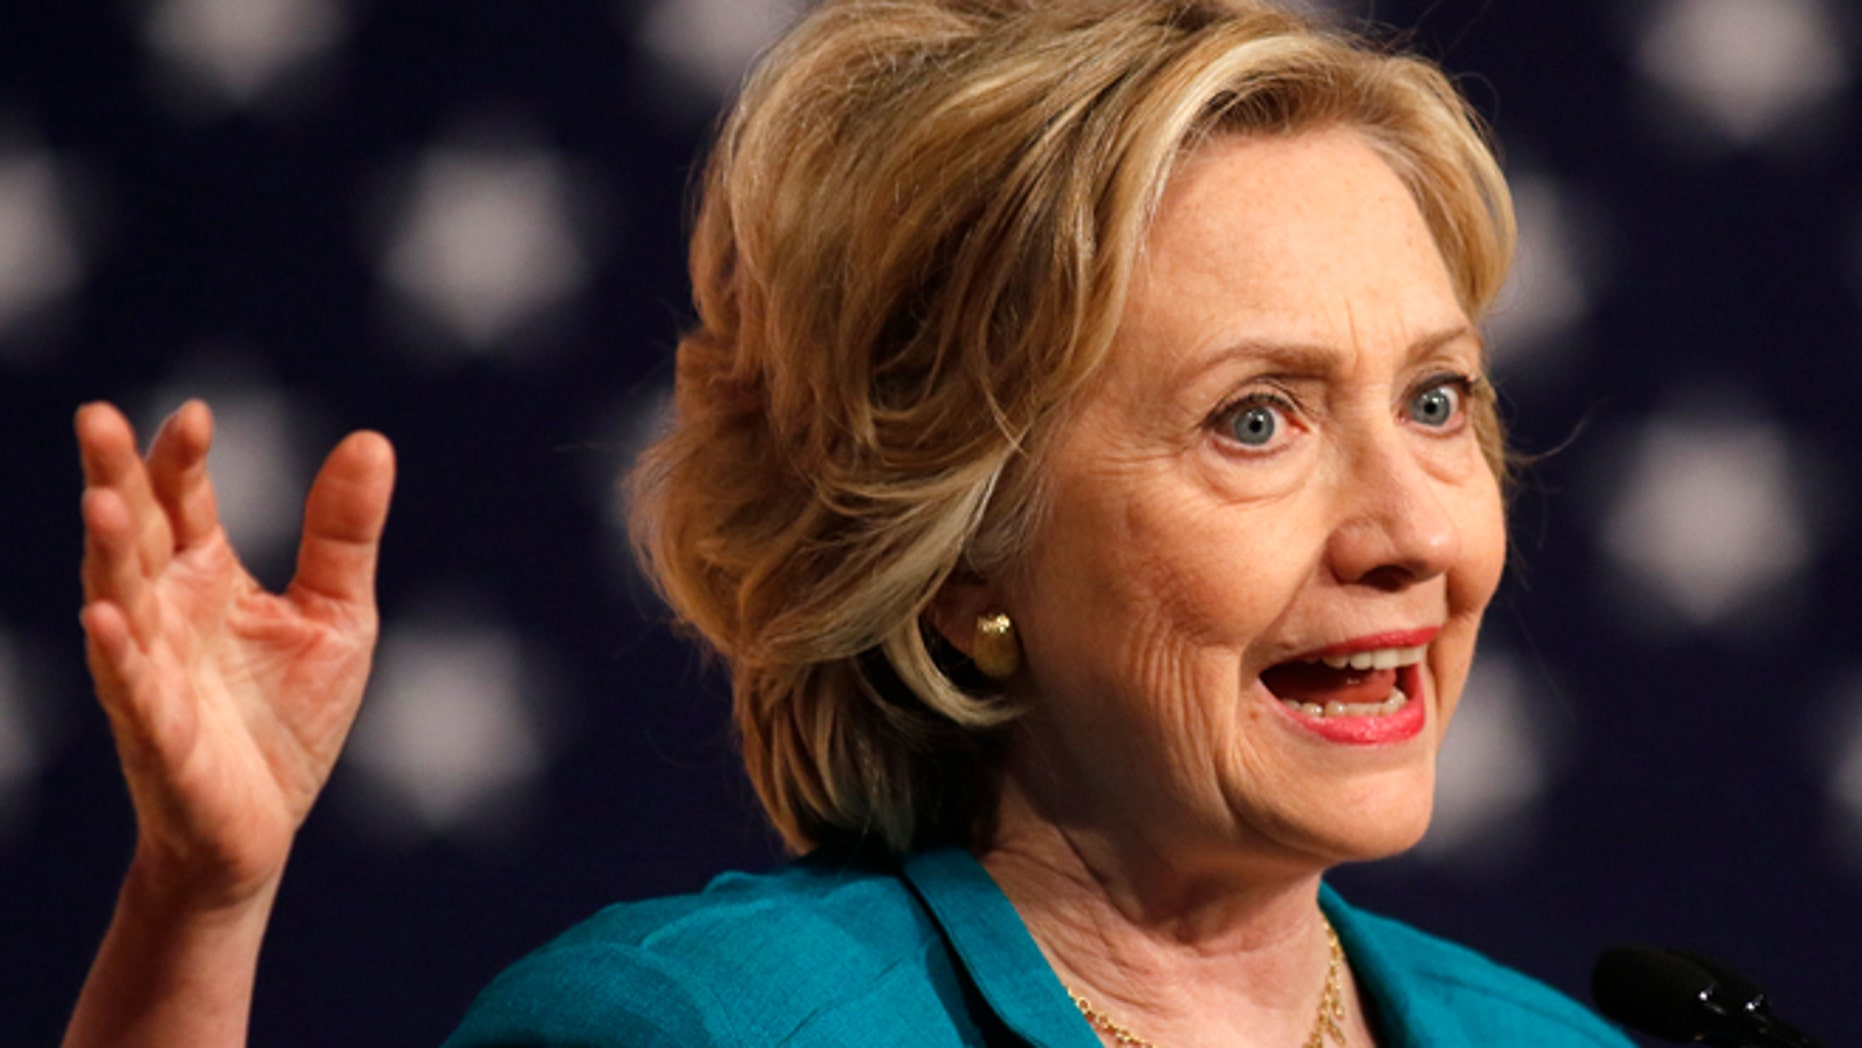 July 31, 2015: Democratic U.S presidential candidate Hillary Clinton makes a speech on Cuban relations at Florida International University in Miami, Florida.